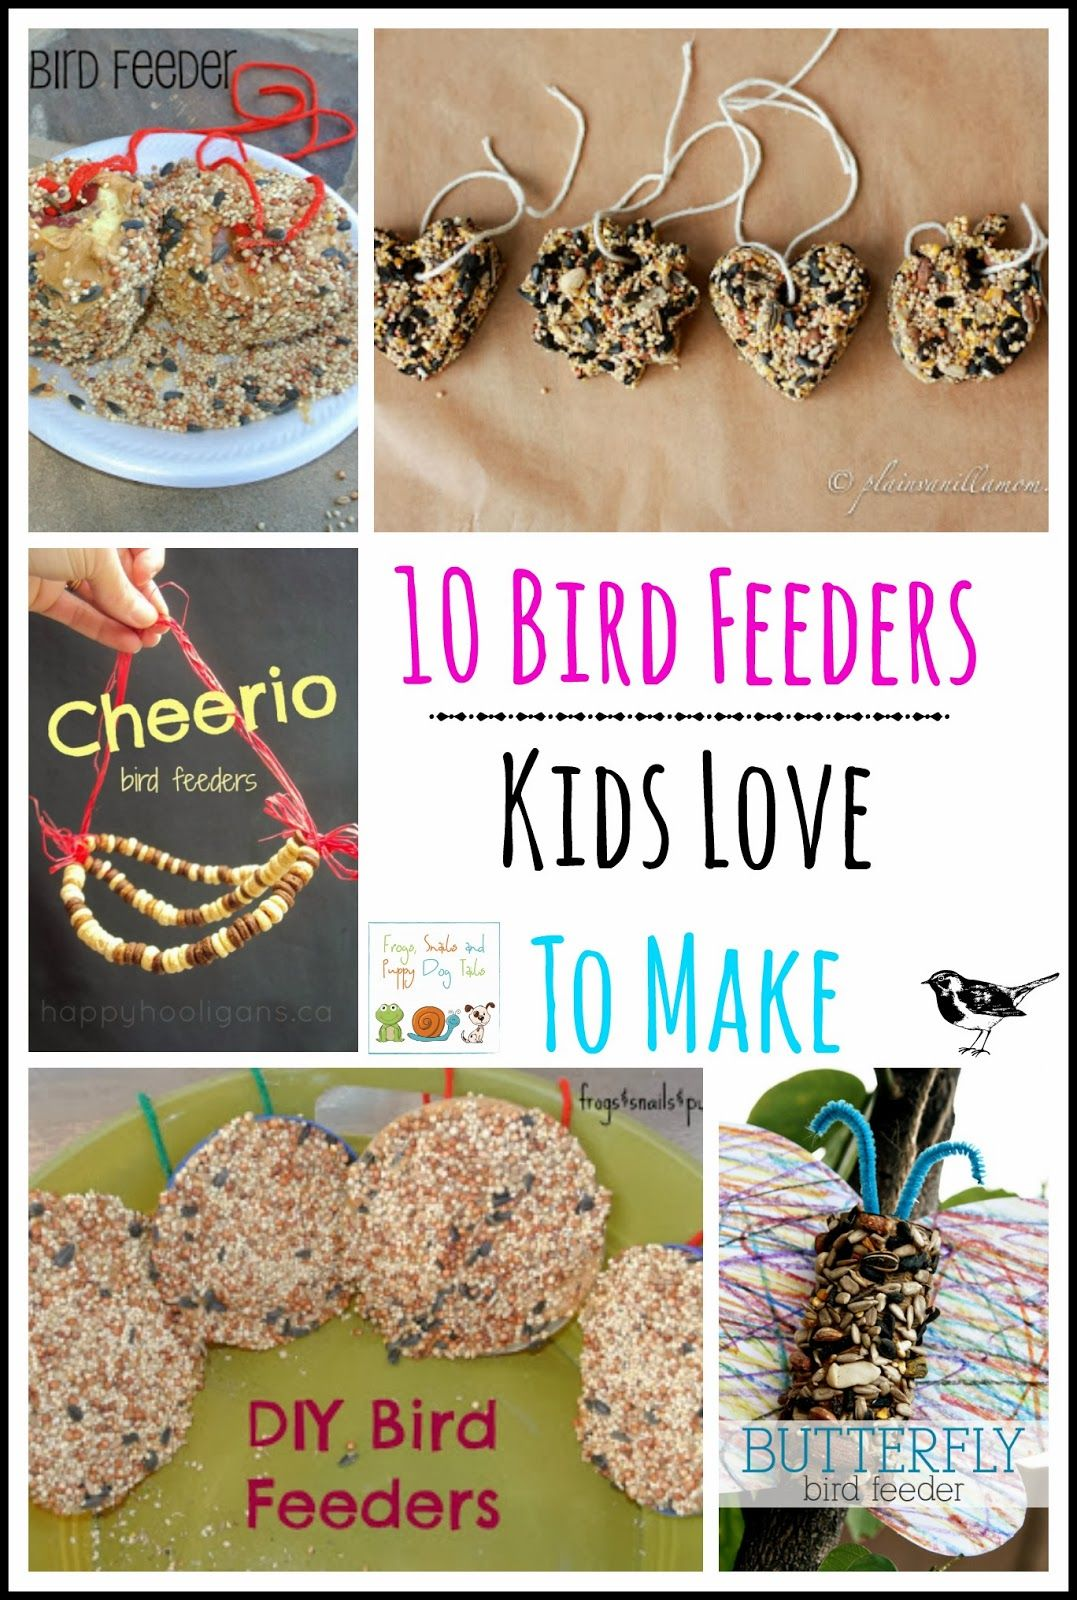 Lovely 10 Bird Feeders Kids Love To Make (Frogs Snails And Puppy Dog Tails)